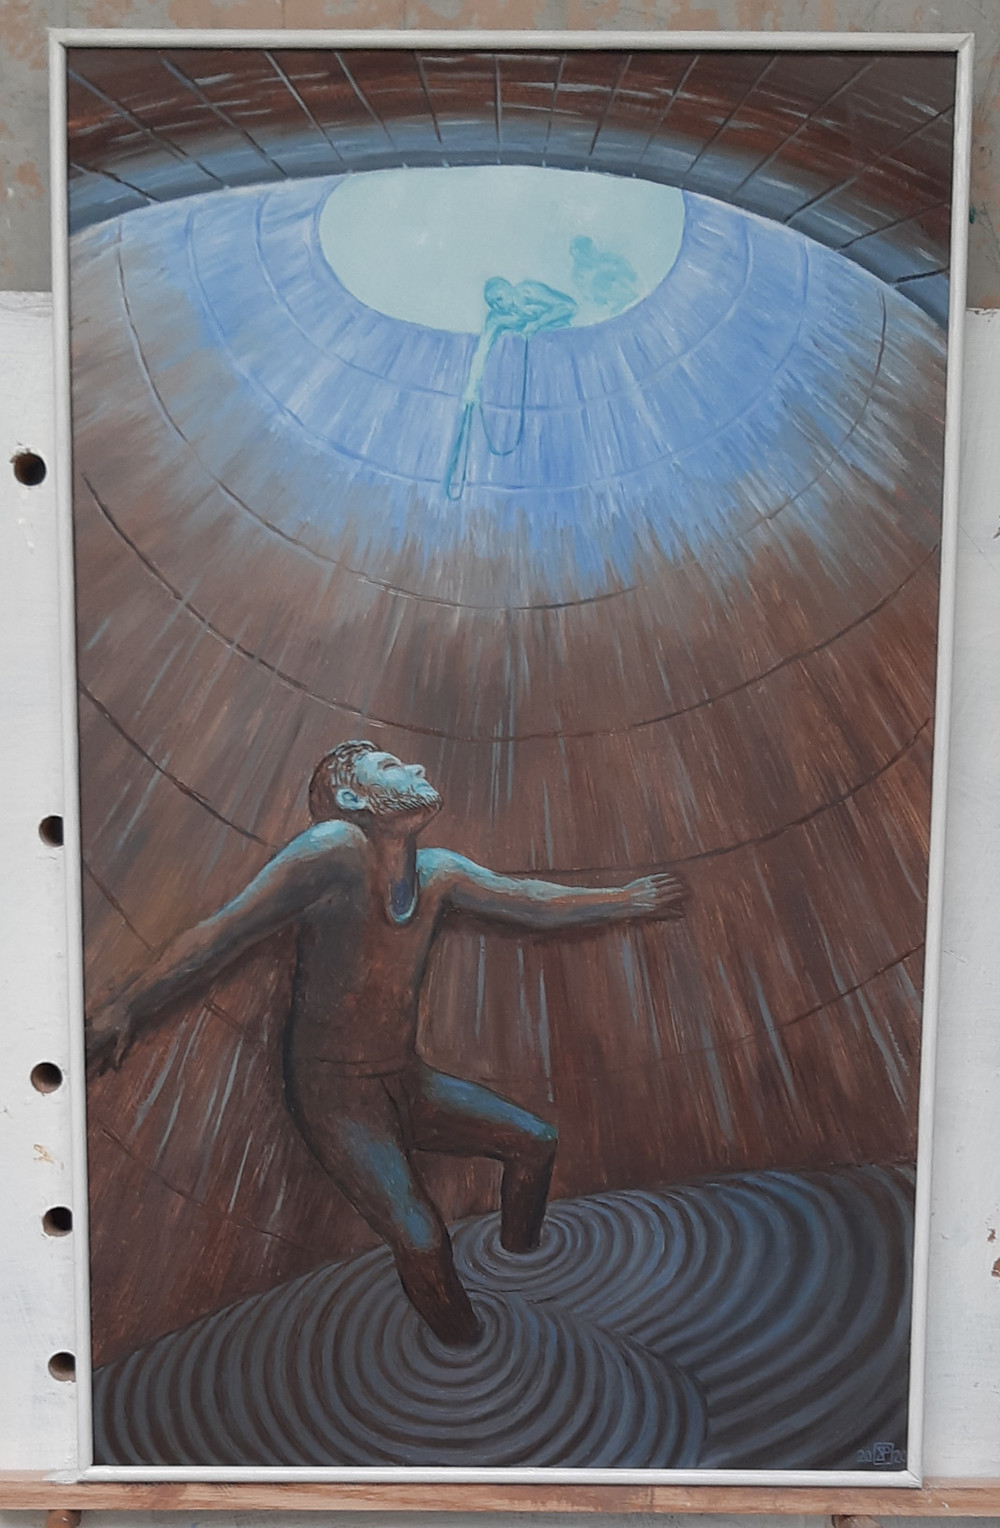 Completed painting of Jeremiah down the well, you can see Jeremiah at the bottom holding onto the wall, feet in the mud. At the top of the well, his rescuers are visible through a bright light blue haze lowering a rope that hasn't reached him. The painting is edged with a thin white baton